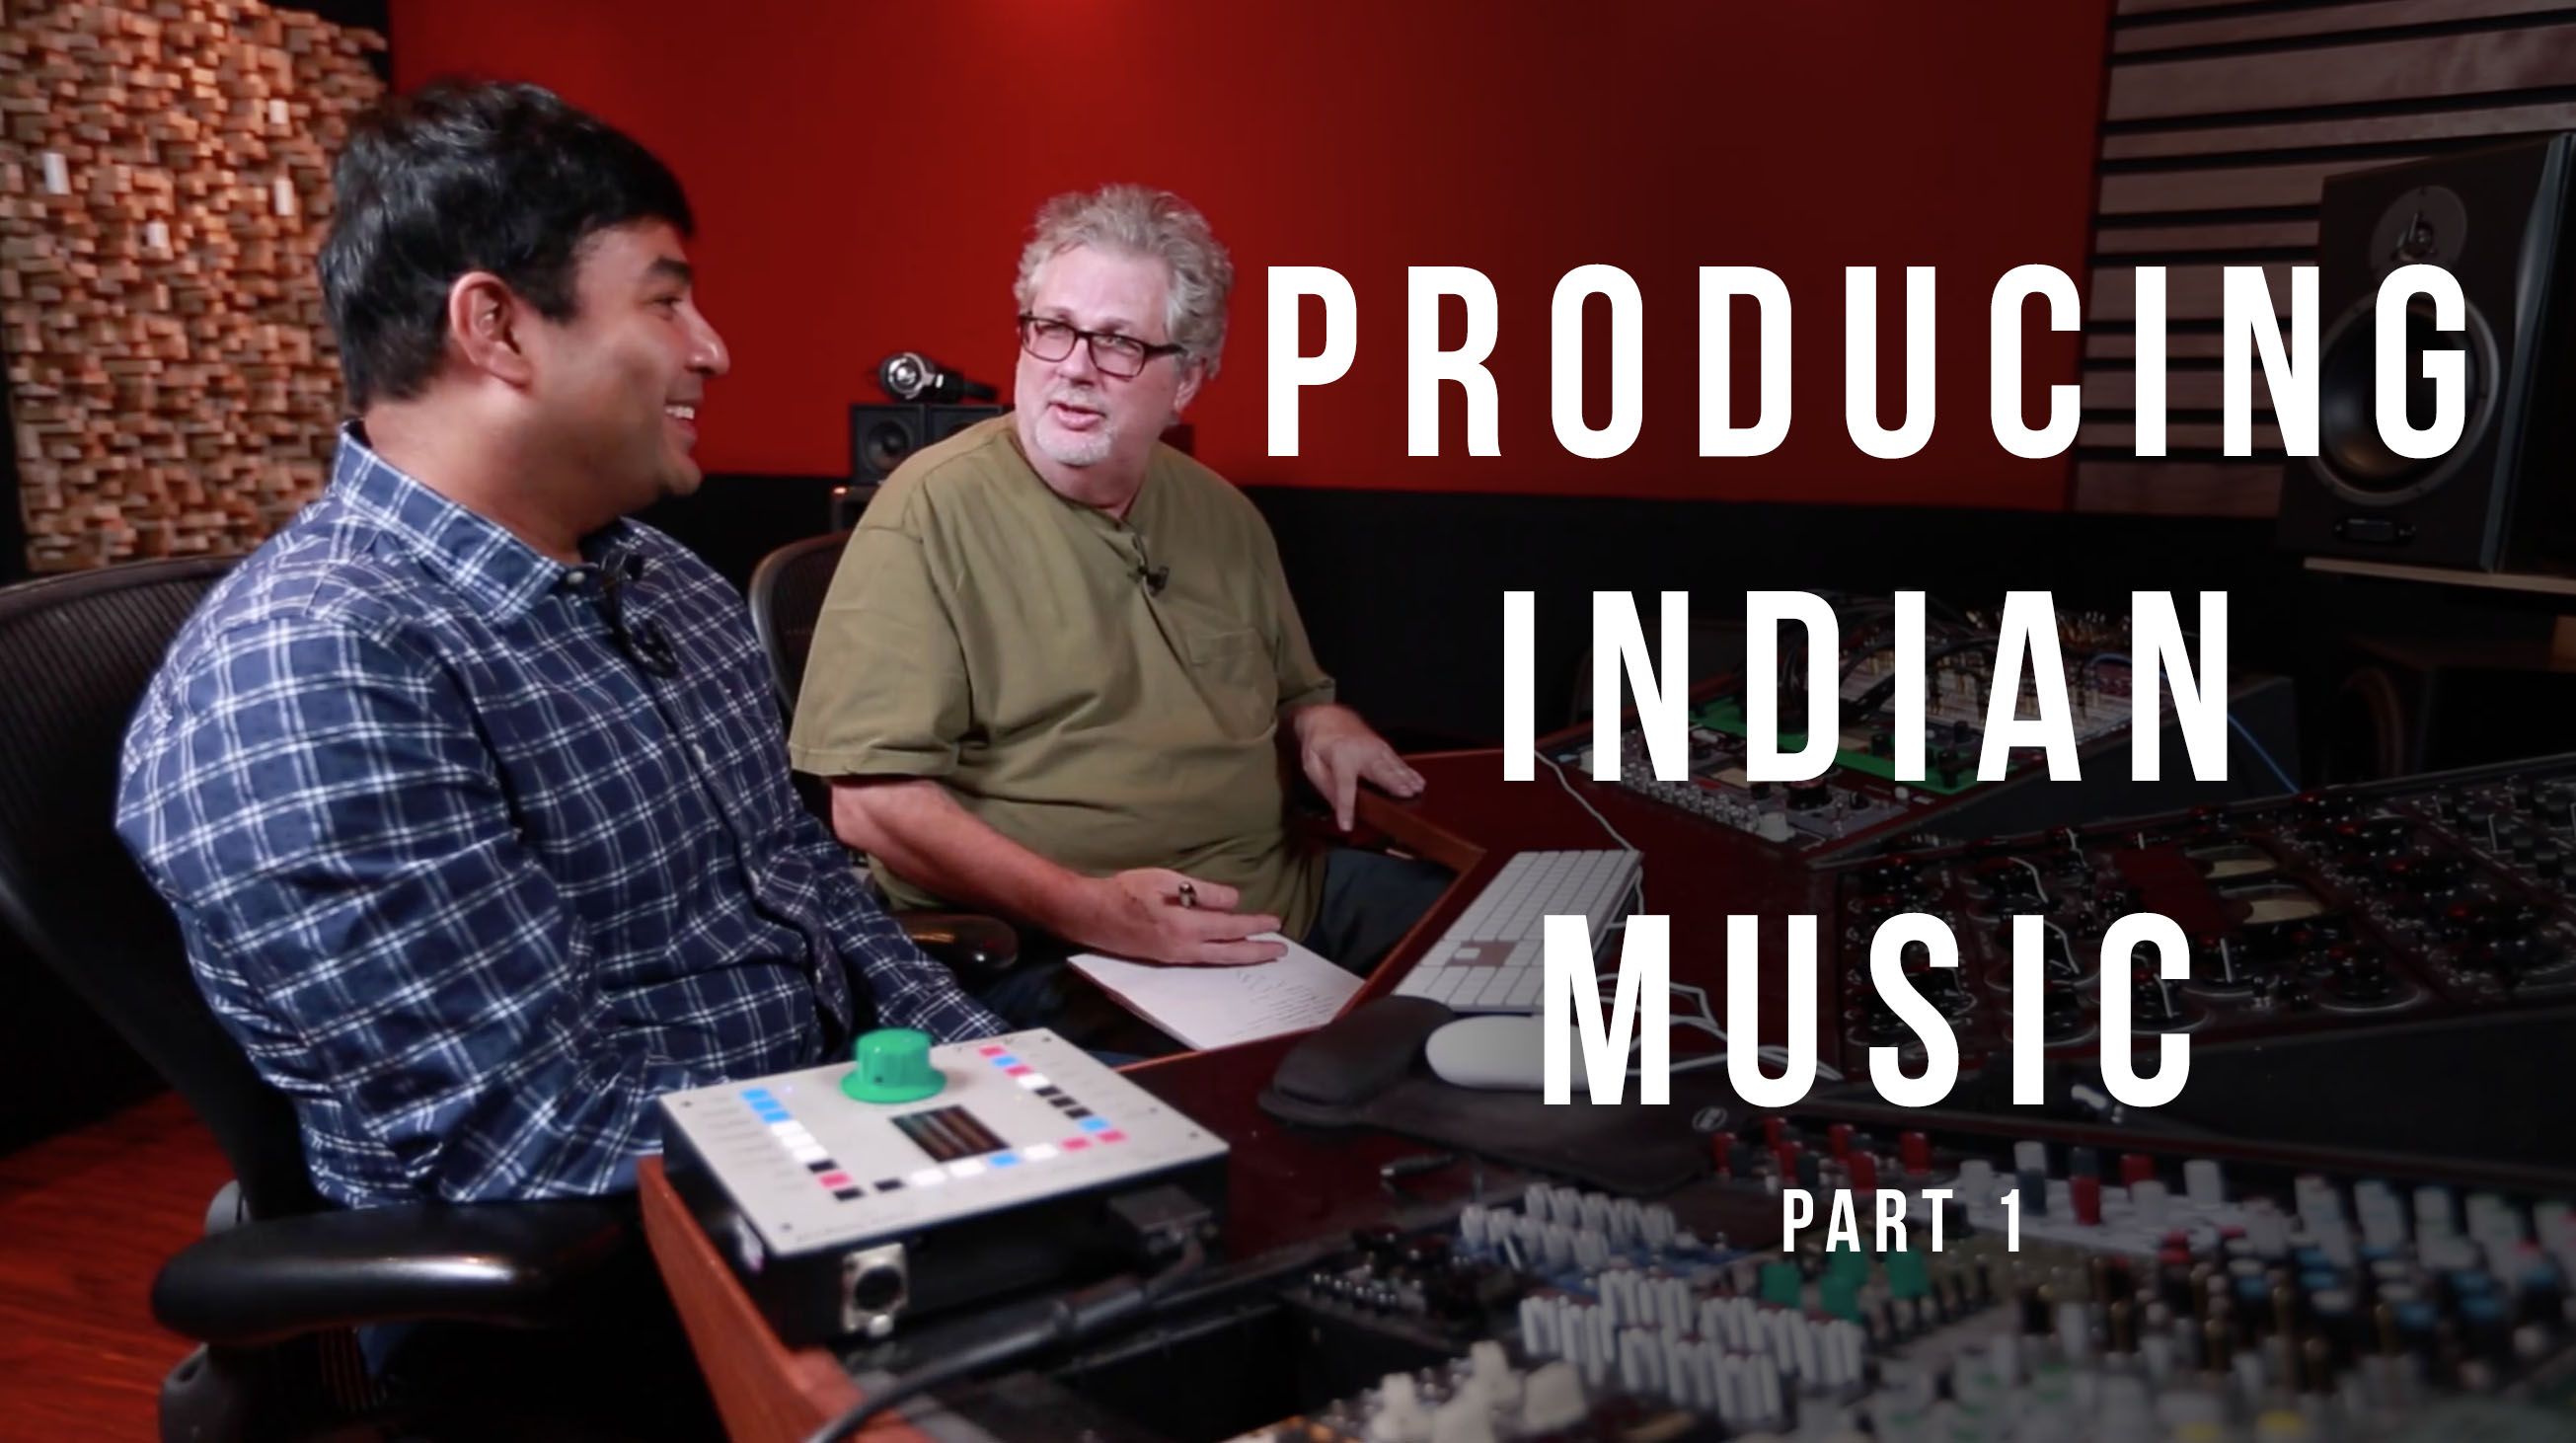 Producing Indian Music with Gaurav Dayal pt.1